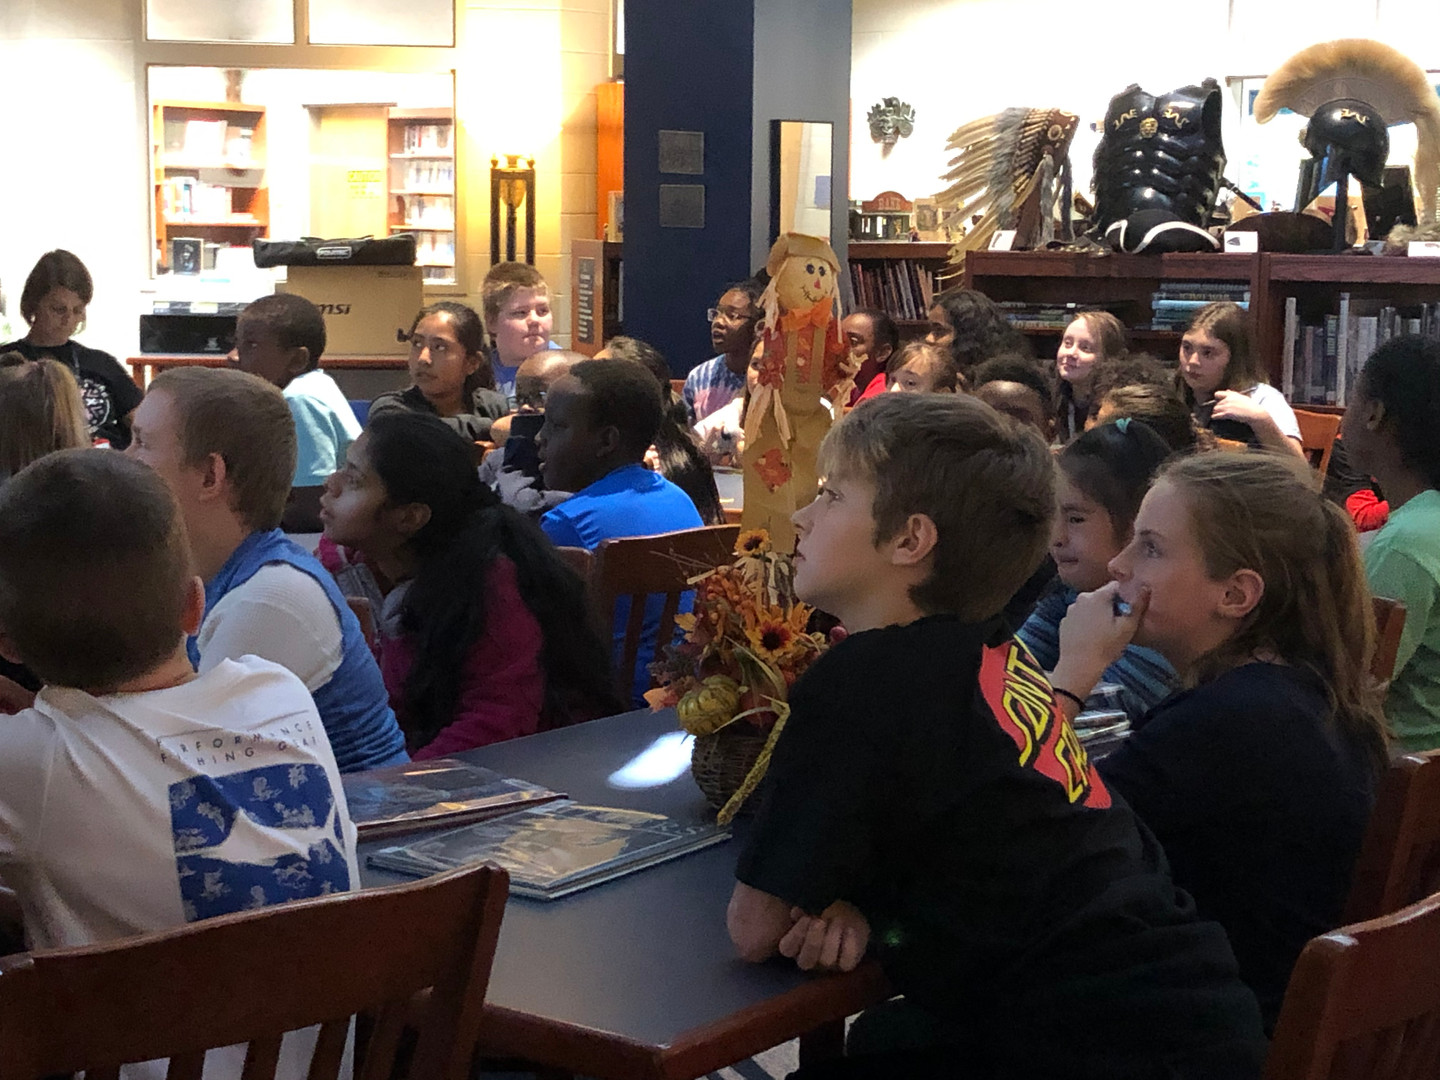 Students Skyping with a Scientist